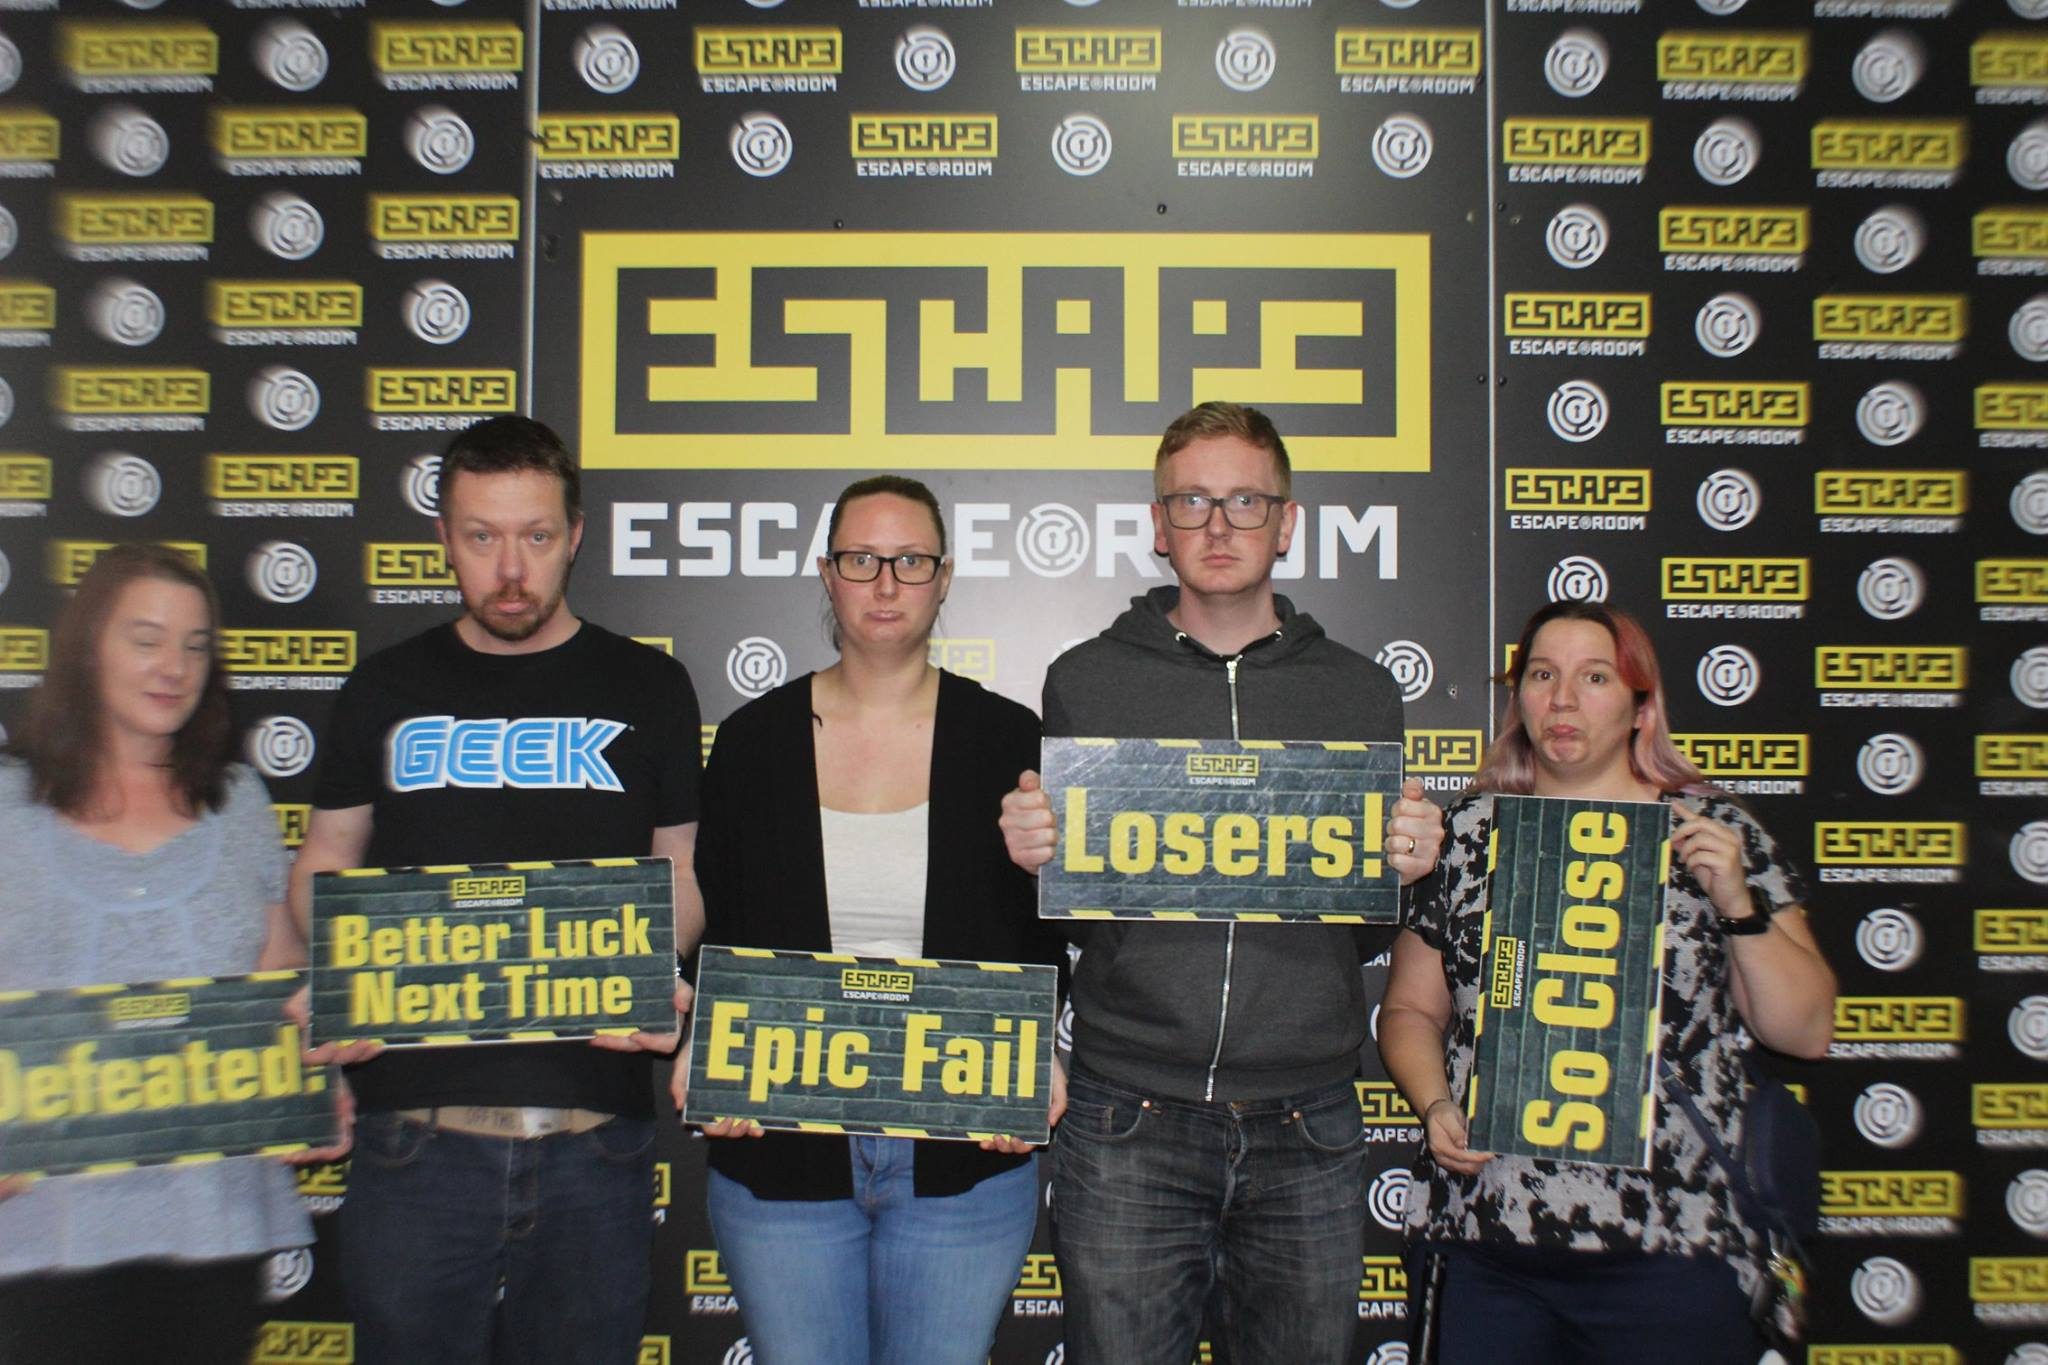 Escape Room, Preston – Spy Mission